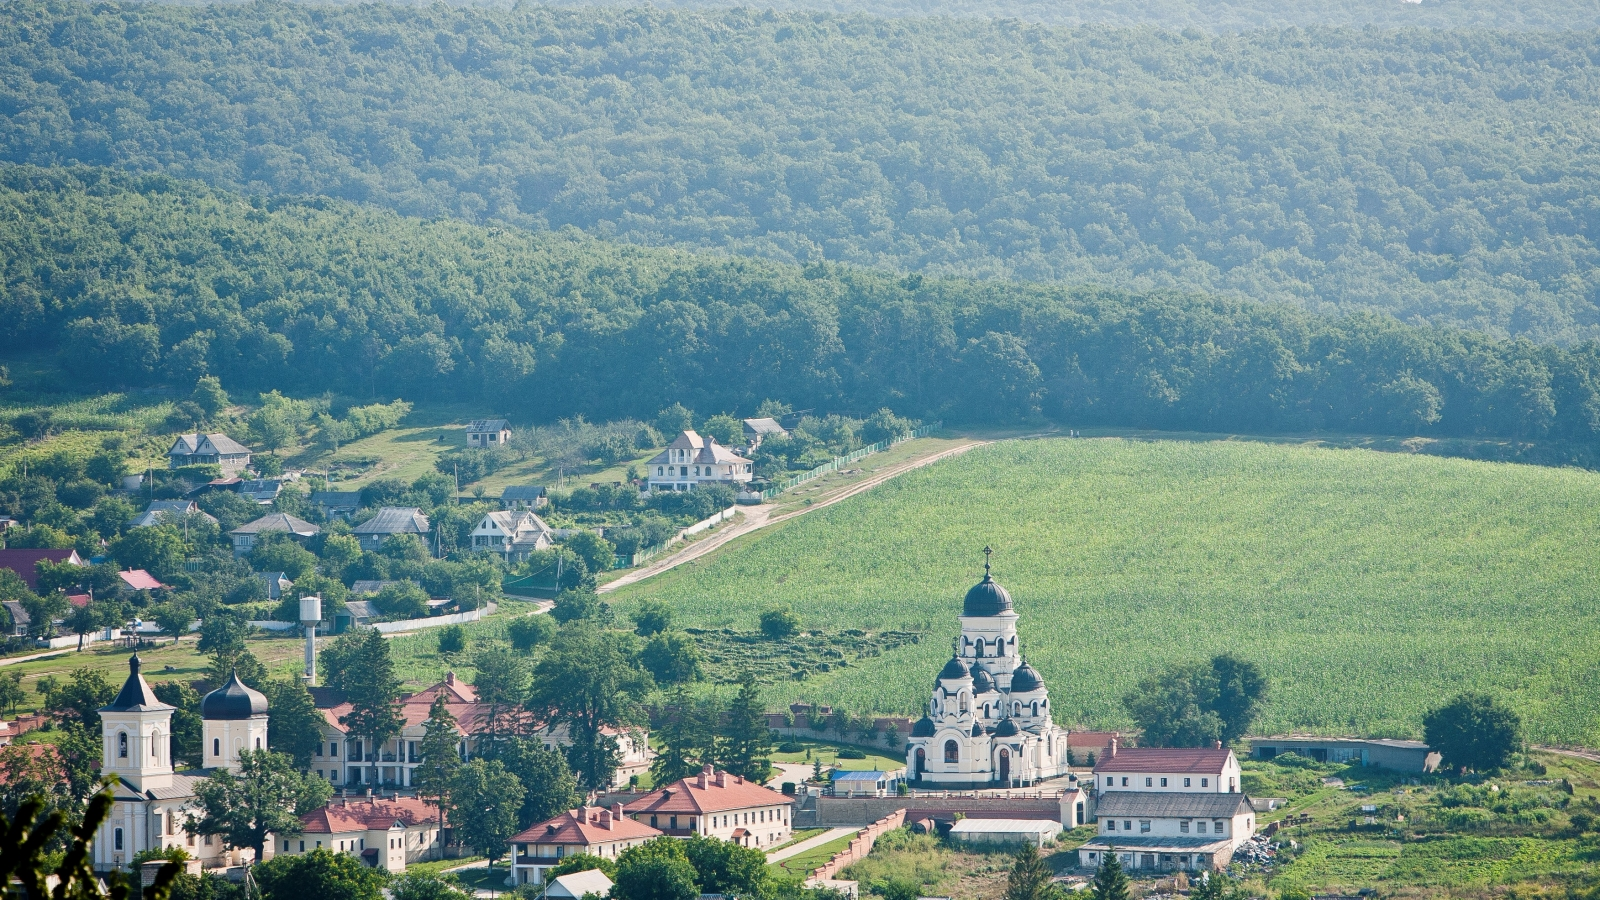 Codri forest. Village Capriana and its monastery, located in the central hills of Moldova (Credit: FLEG programme)